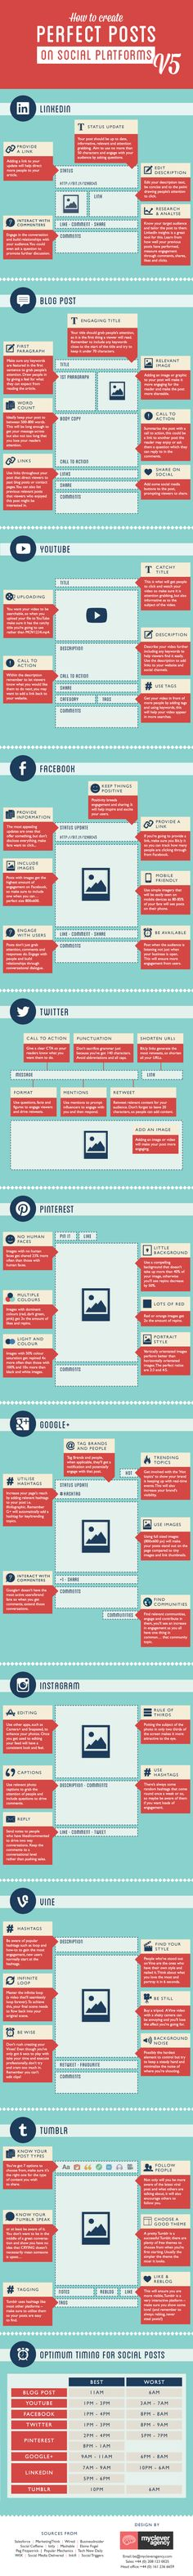 How to Create Perfect Posts on #SocialMedia Platforms #Infographic